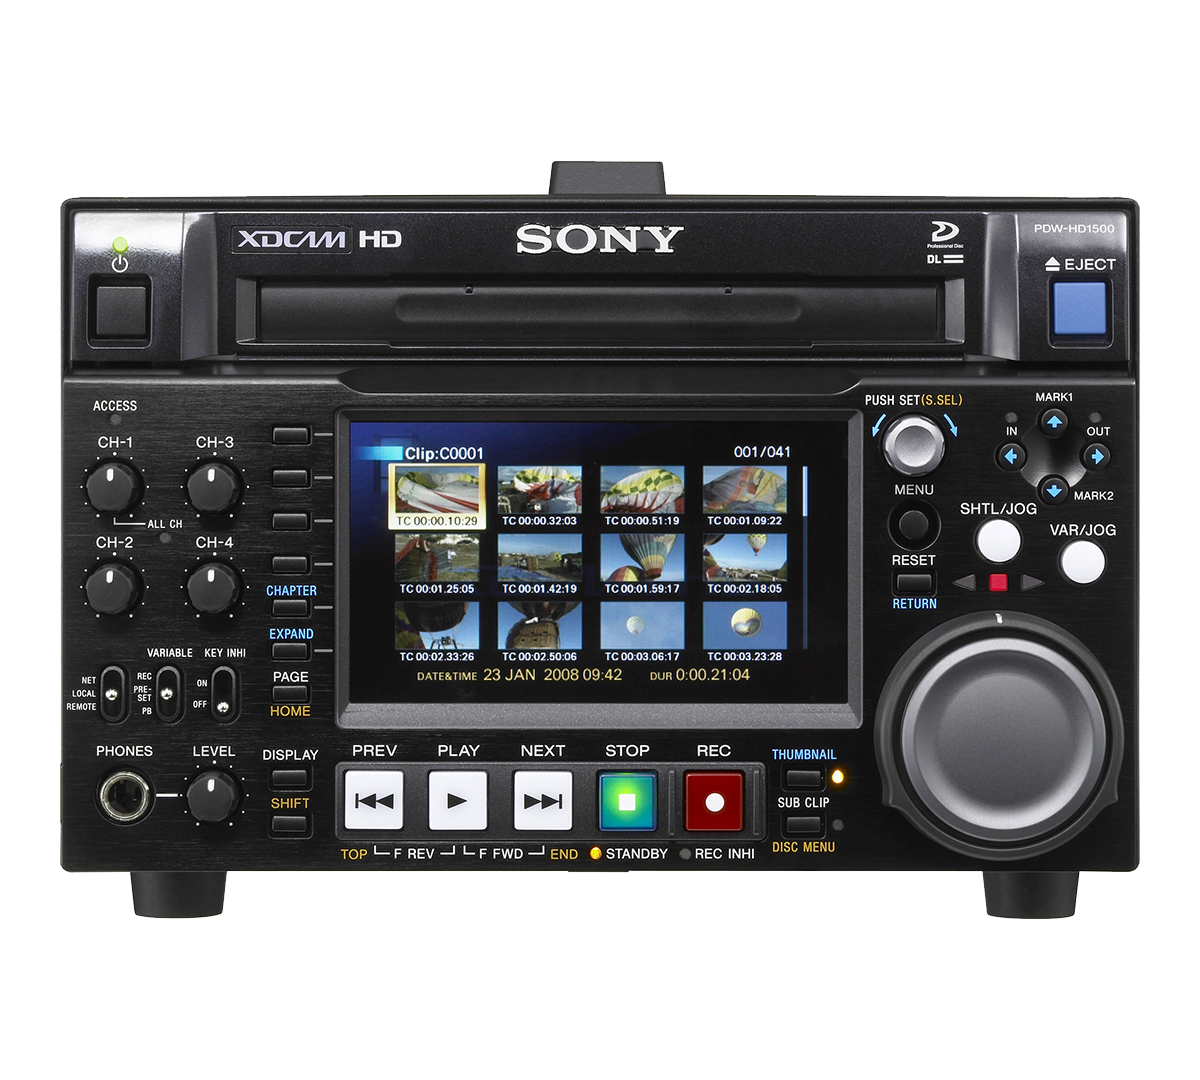 Sony XDCAM Recorder - HD - Compact - Sony PDW-HD1500